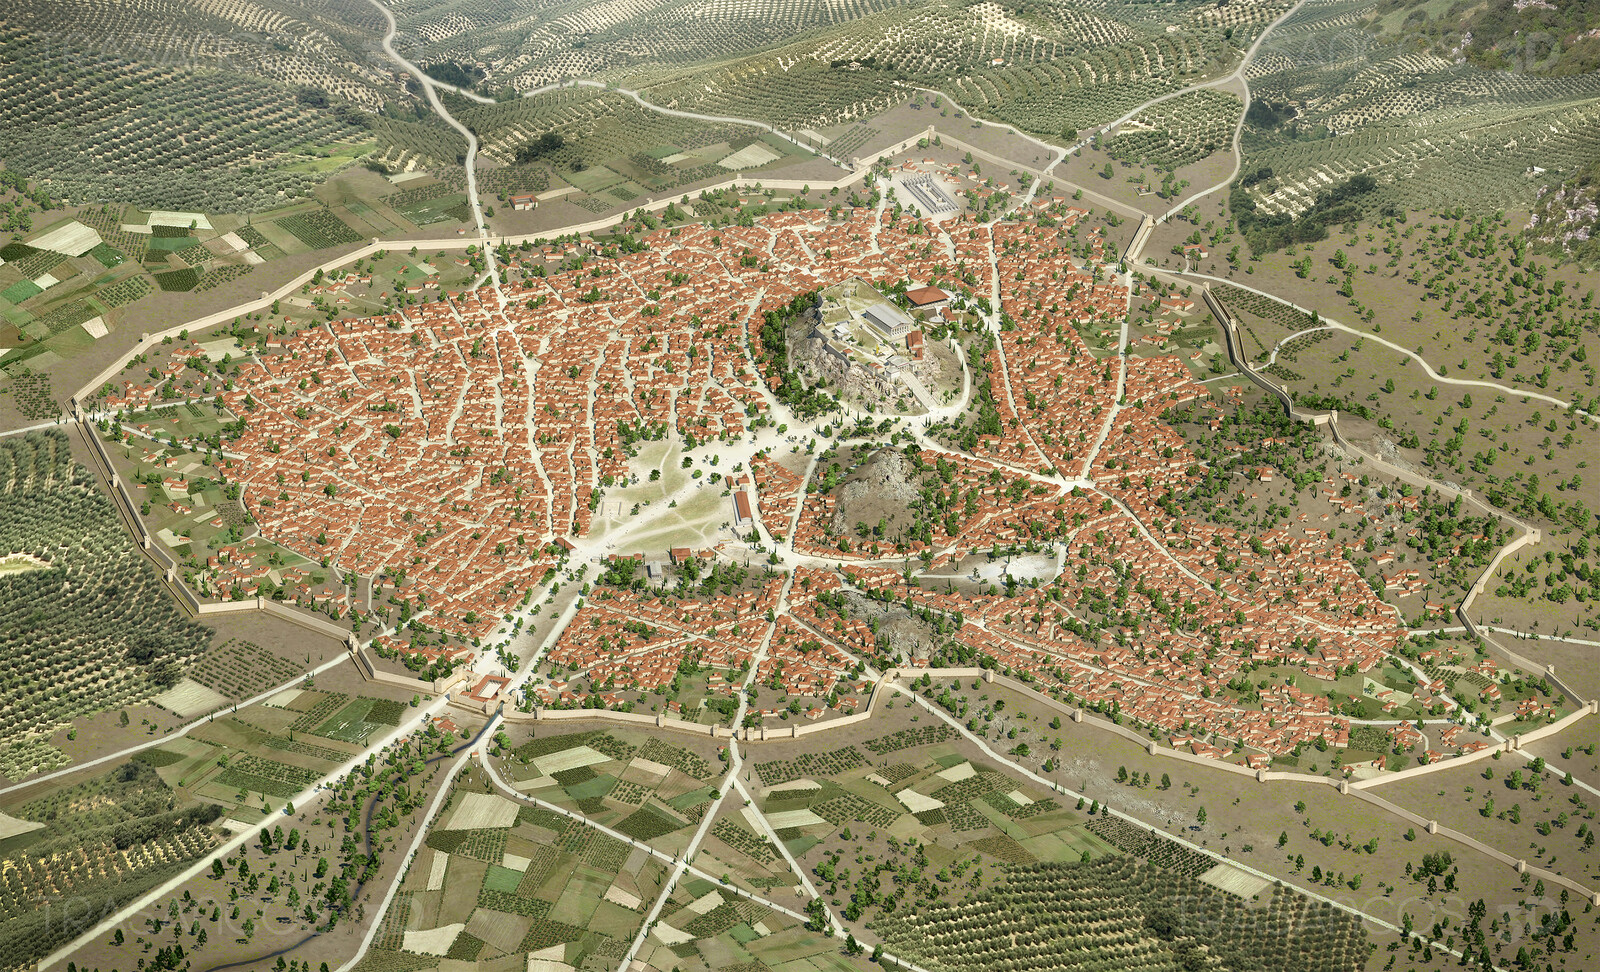 General view of Athens in The time of Pericles. Modeled in collaboration with: - Andrés Armesto - Alejandro Soriano - Carlos Paz - Diego Blanco